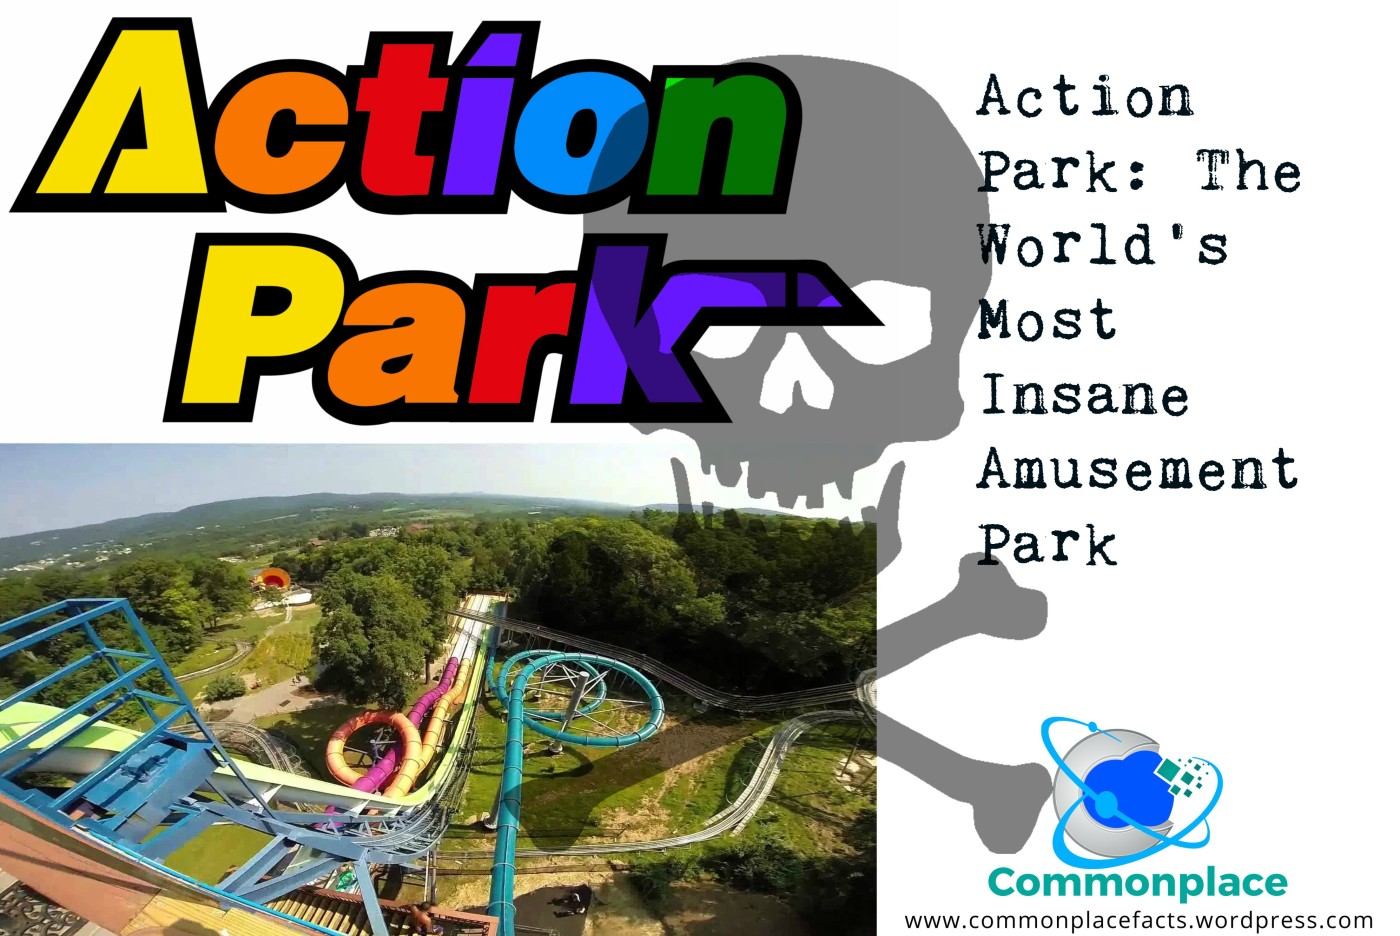 #actionpark #thrillrides #dangerous #extreme #liability #funfacts